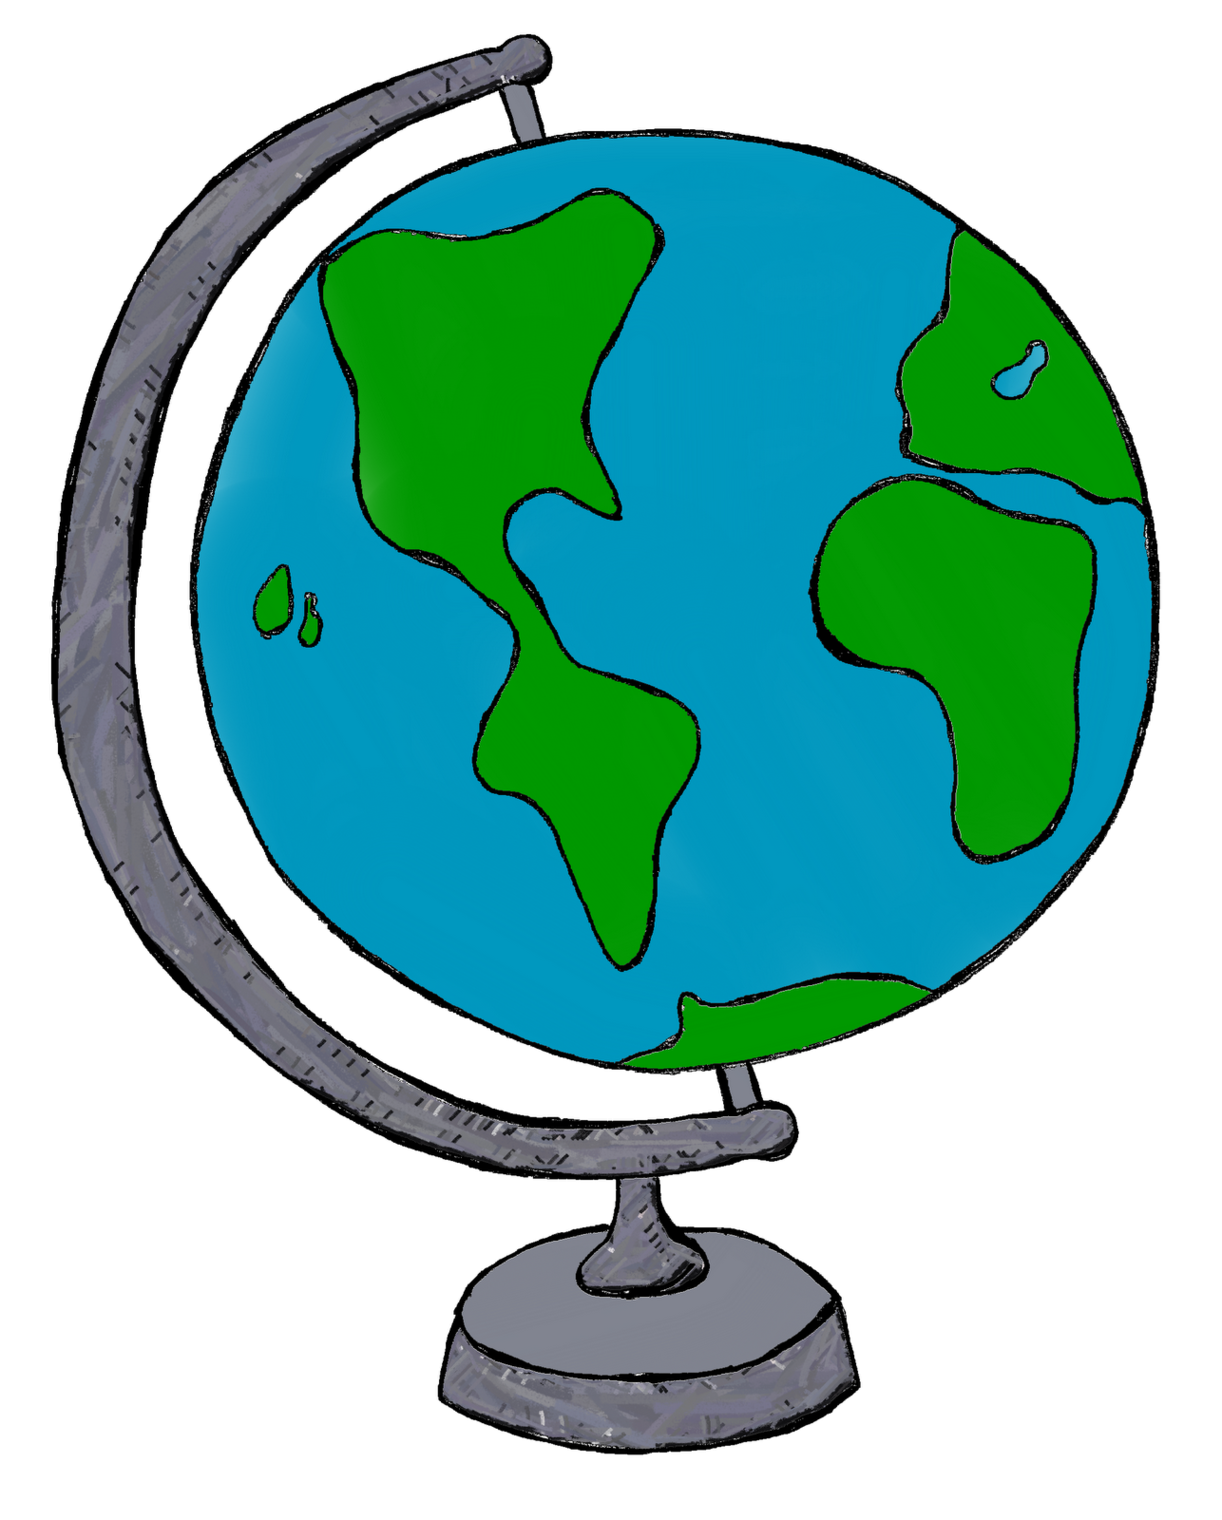 World clip art globe free clipart images.